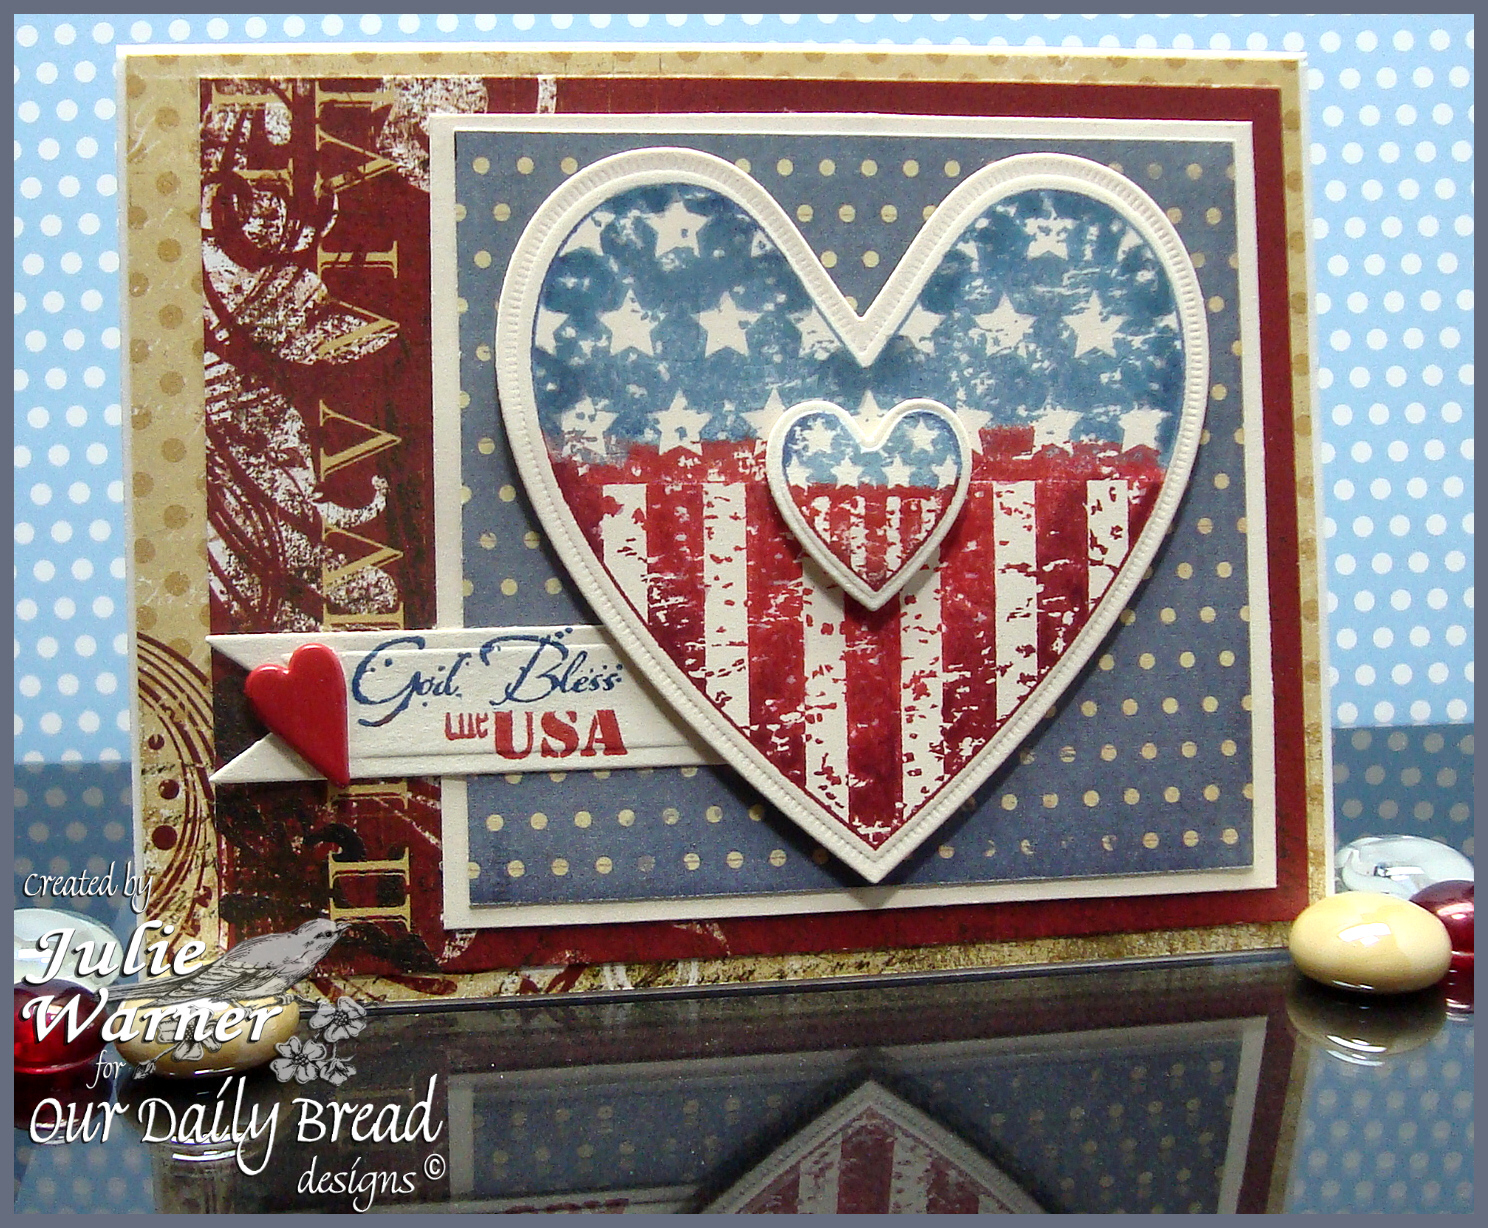 Stamps - Our Daily Bread Designs Heart and Soul, ODBD Custom Ornate Hearts Die